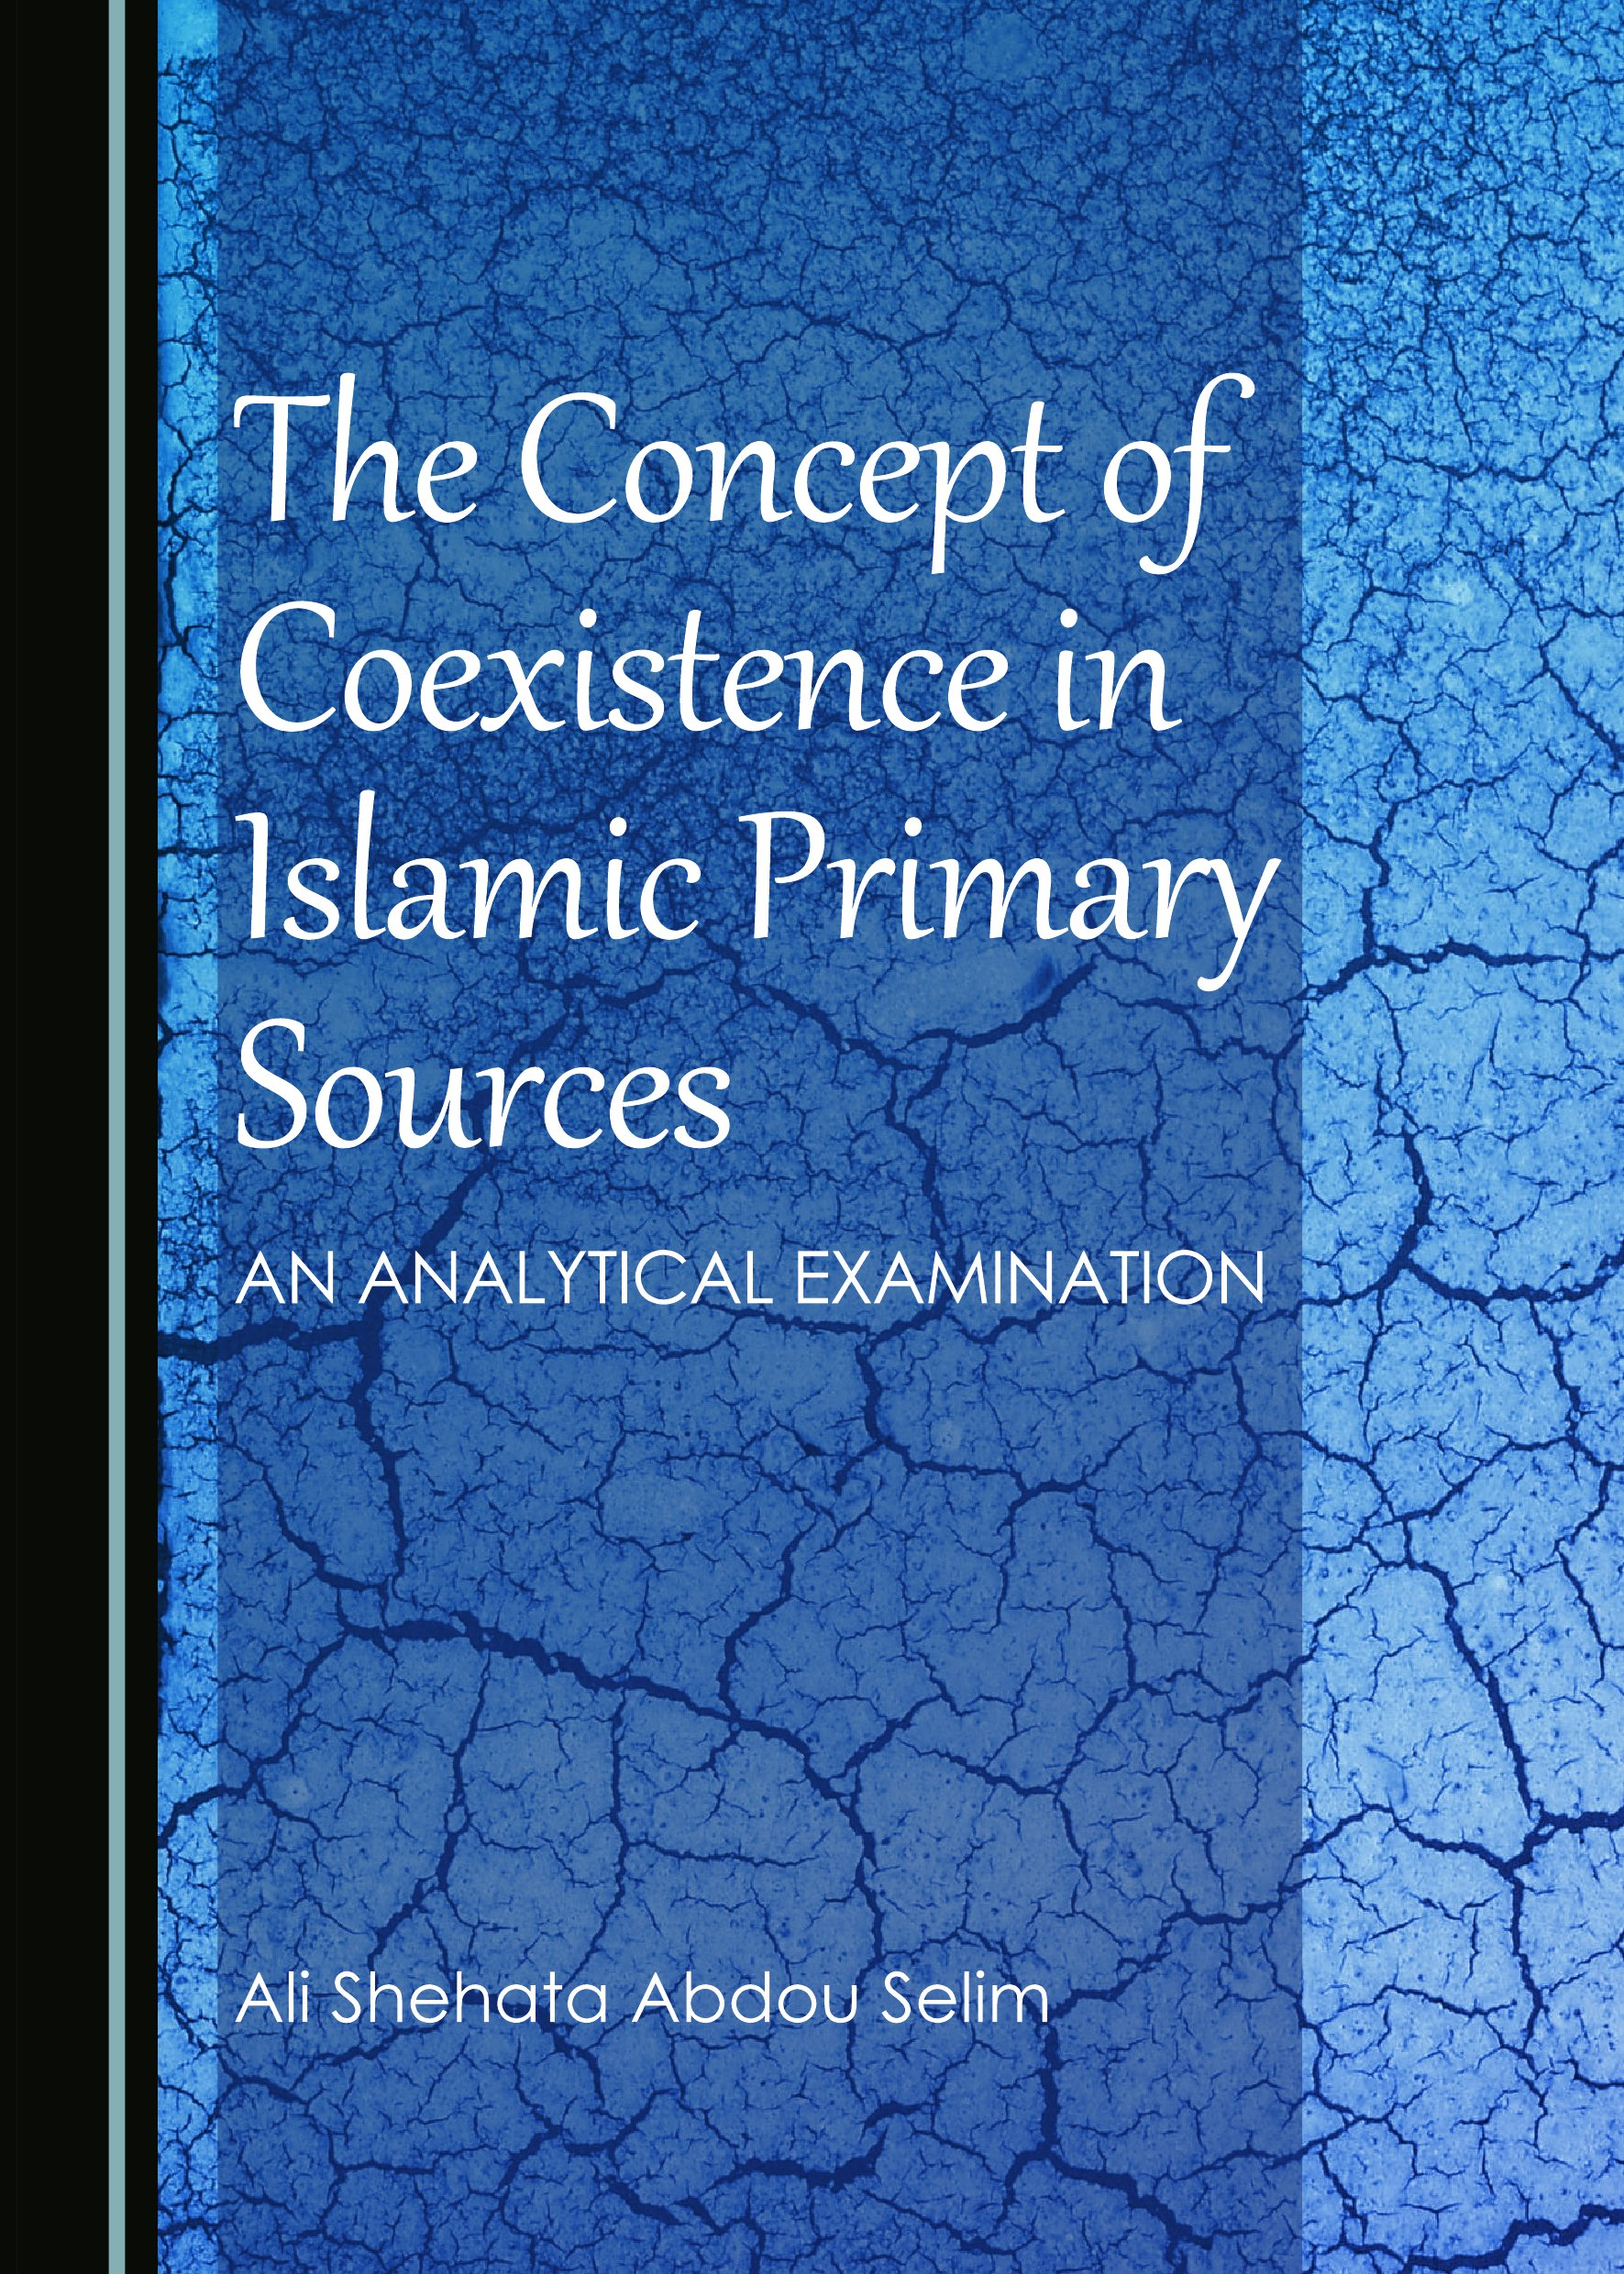 The Concept of Coexistence in Islamic Primary Sources: An Analytical Examination